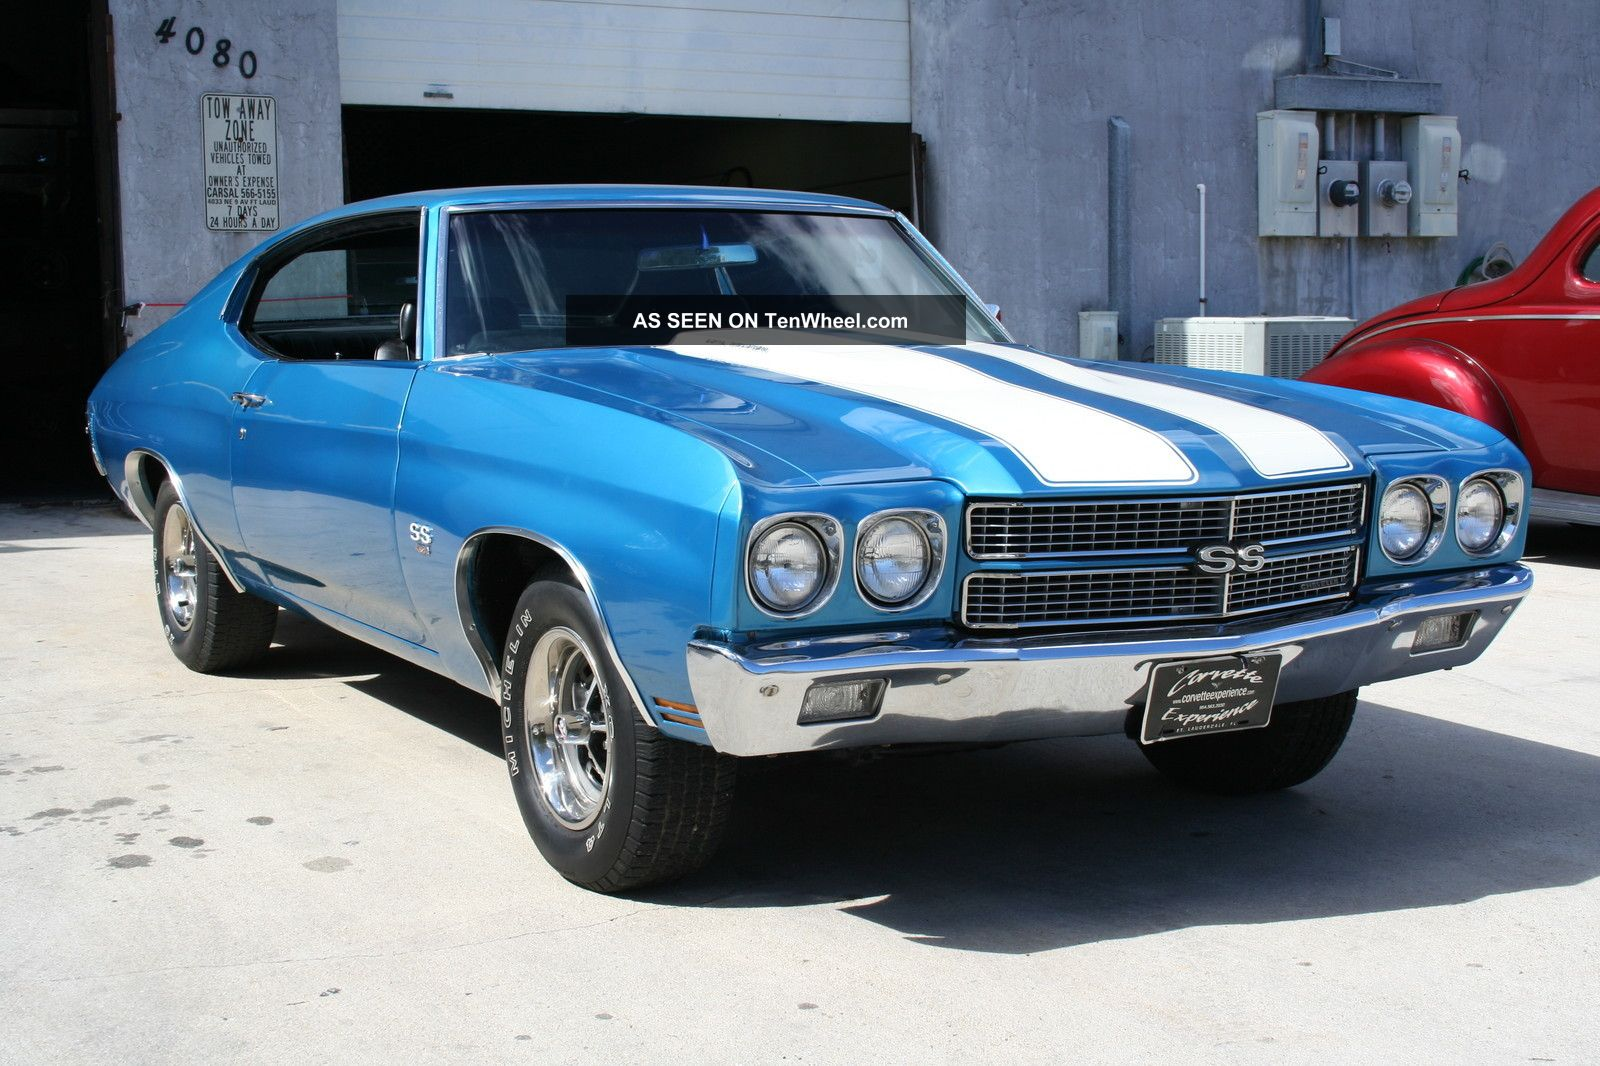 1970 Chevelle Ss 454 Recreation Automatic Power Steering